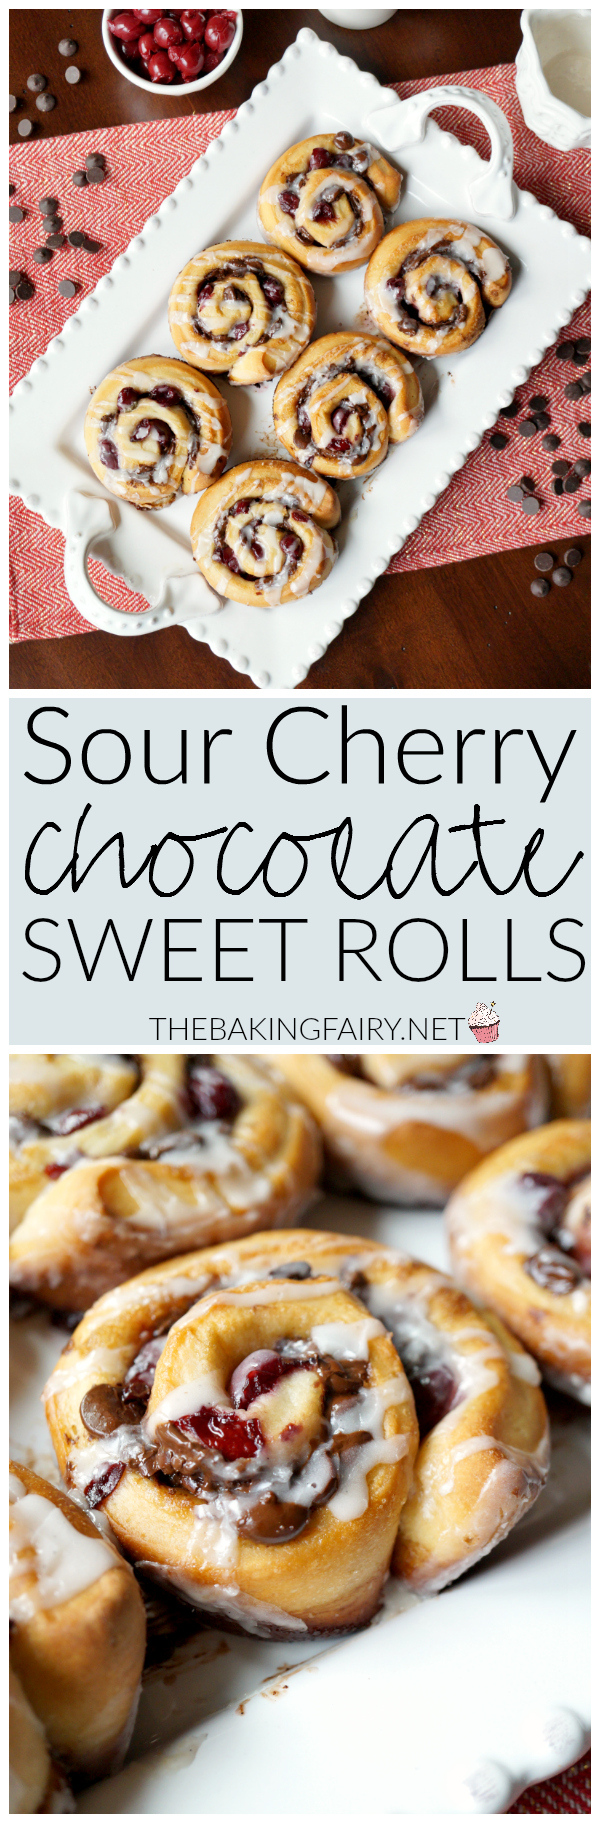 sour cherry chocolate rolls | The Baking Fairy